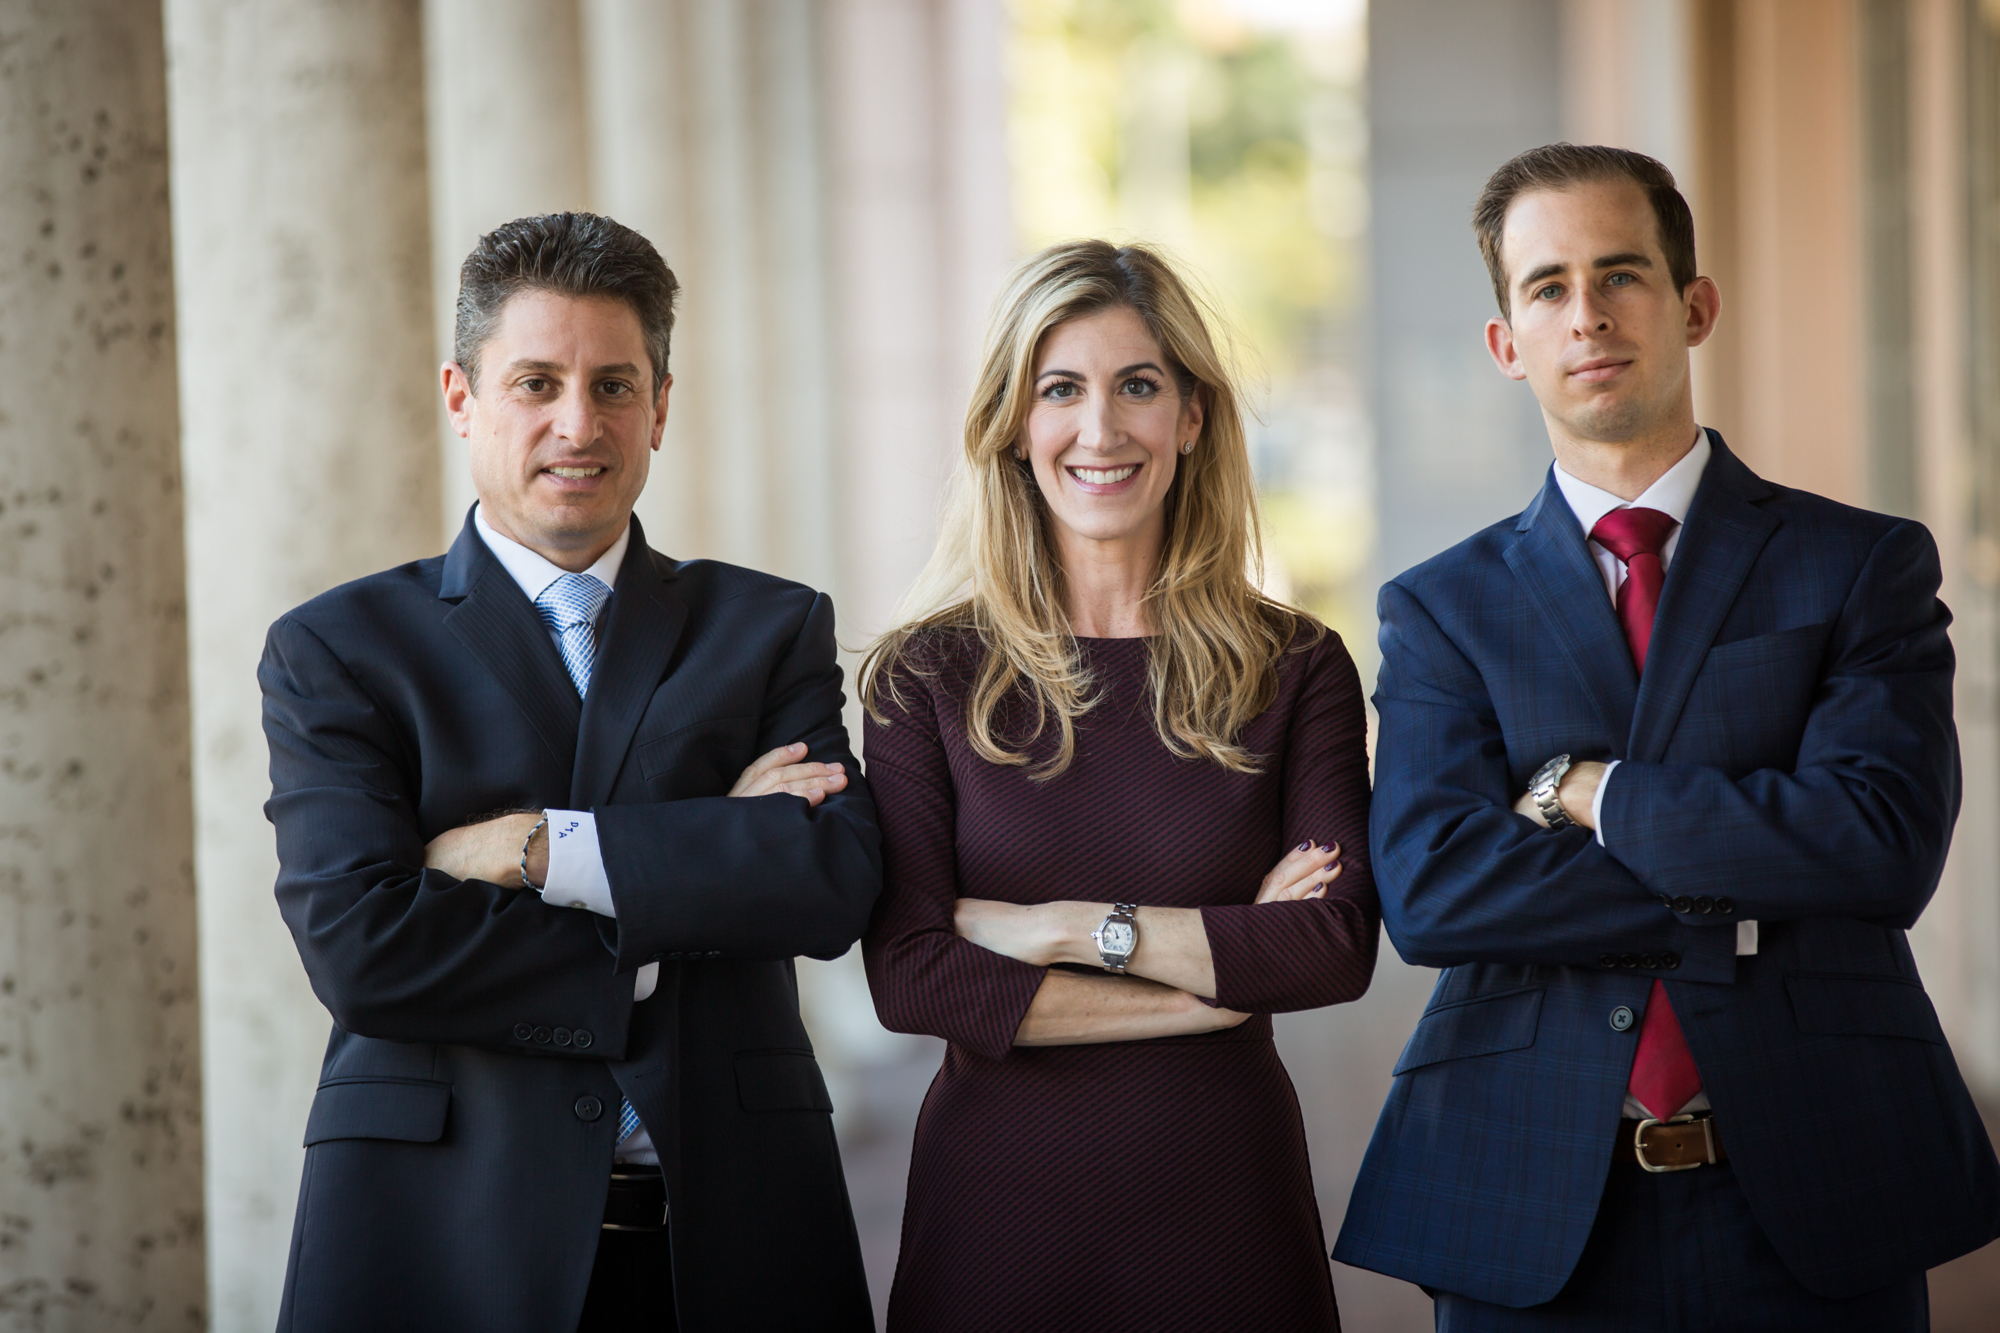 Aronberg, Aronberg & Green, Injury Law Firm reviews | Legal Services at 2160 West Atlantic Avenue - Delray Beach FL